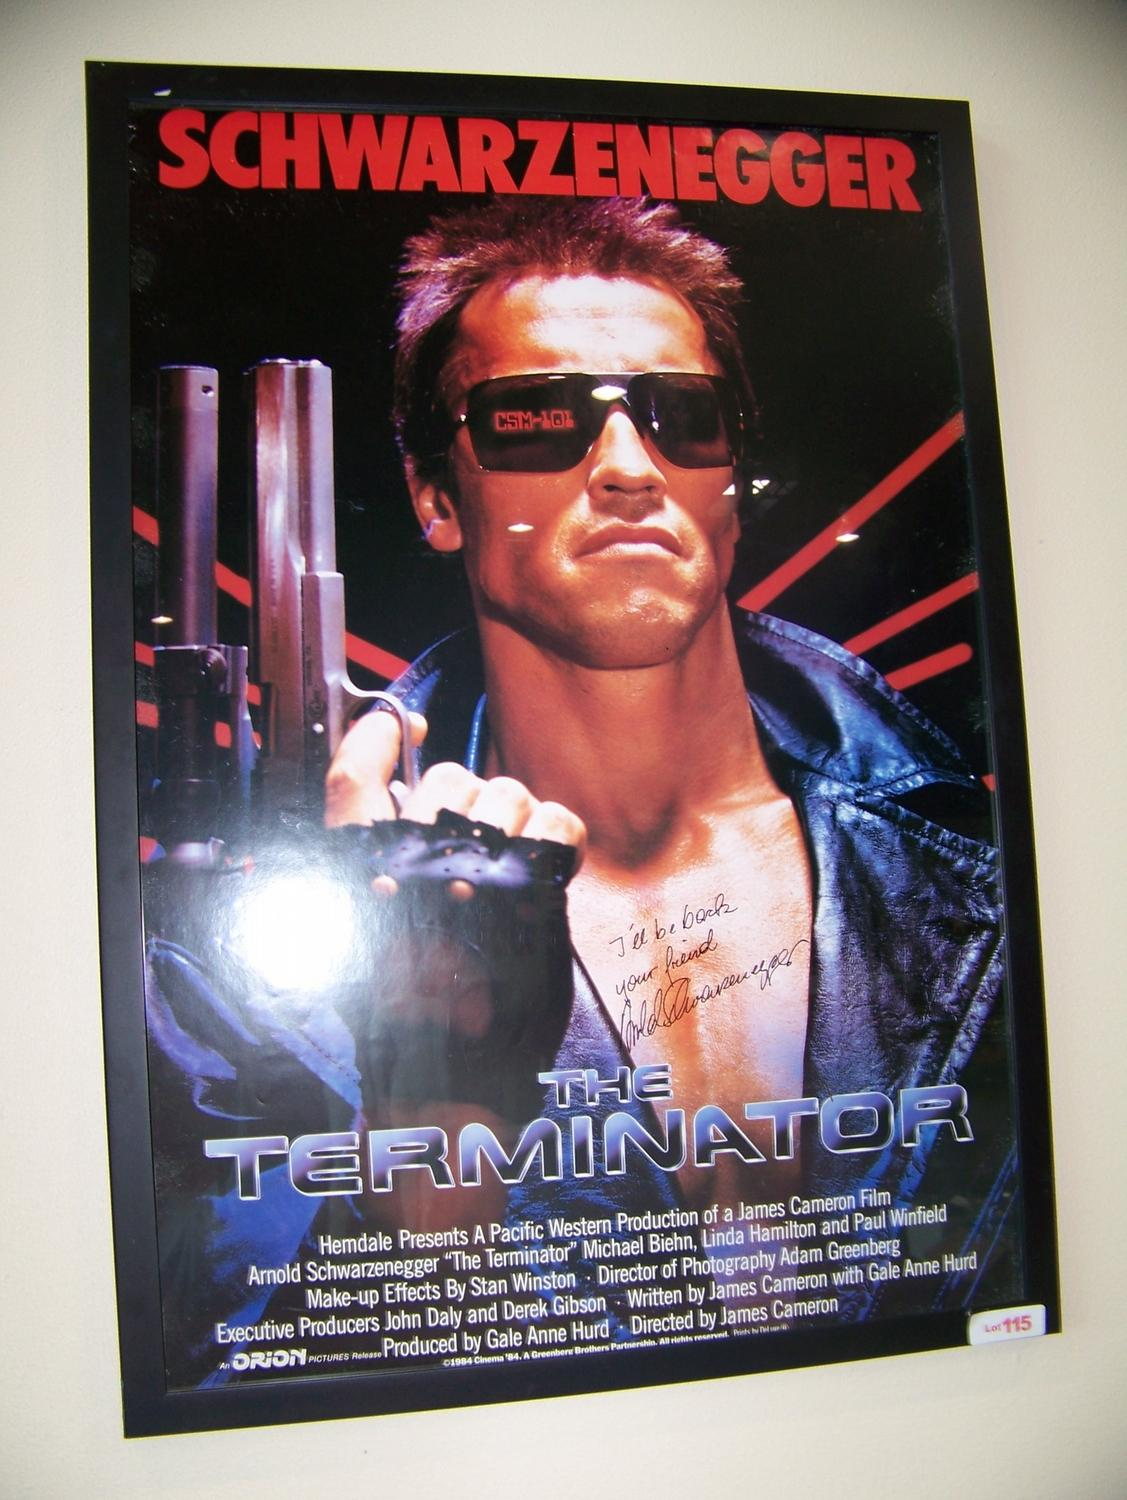 ARNOLD SCHWARZENEGGER HAND SIGNED ORIG TERMINATOR MOVIE POSTER ILL BE BACK Loading Zoom